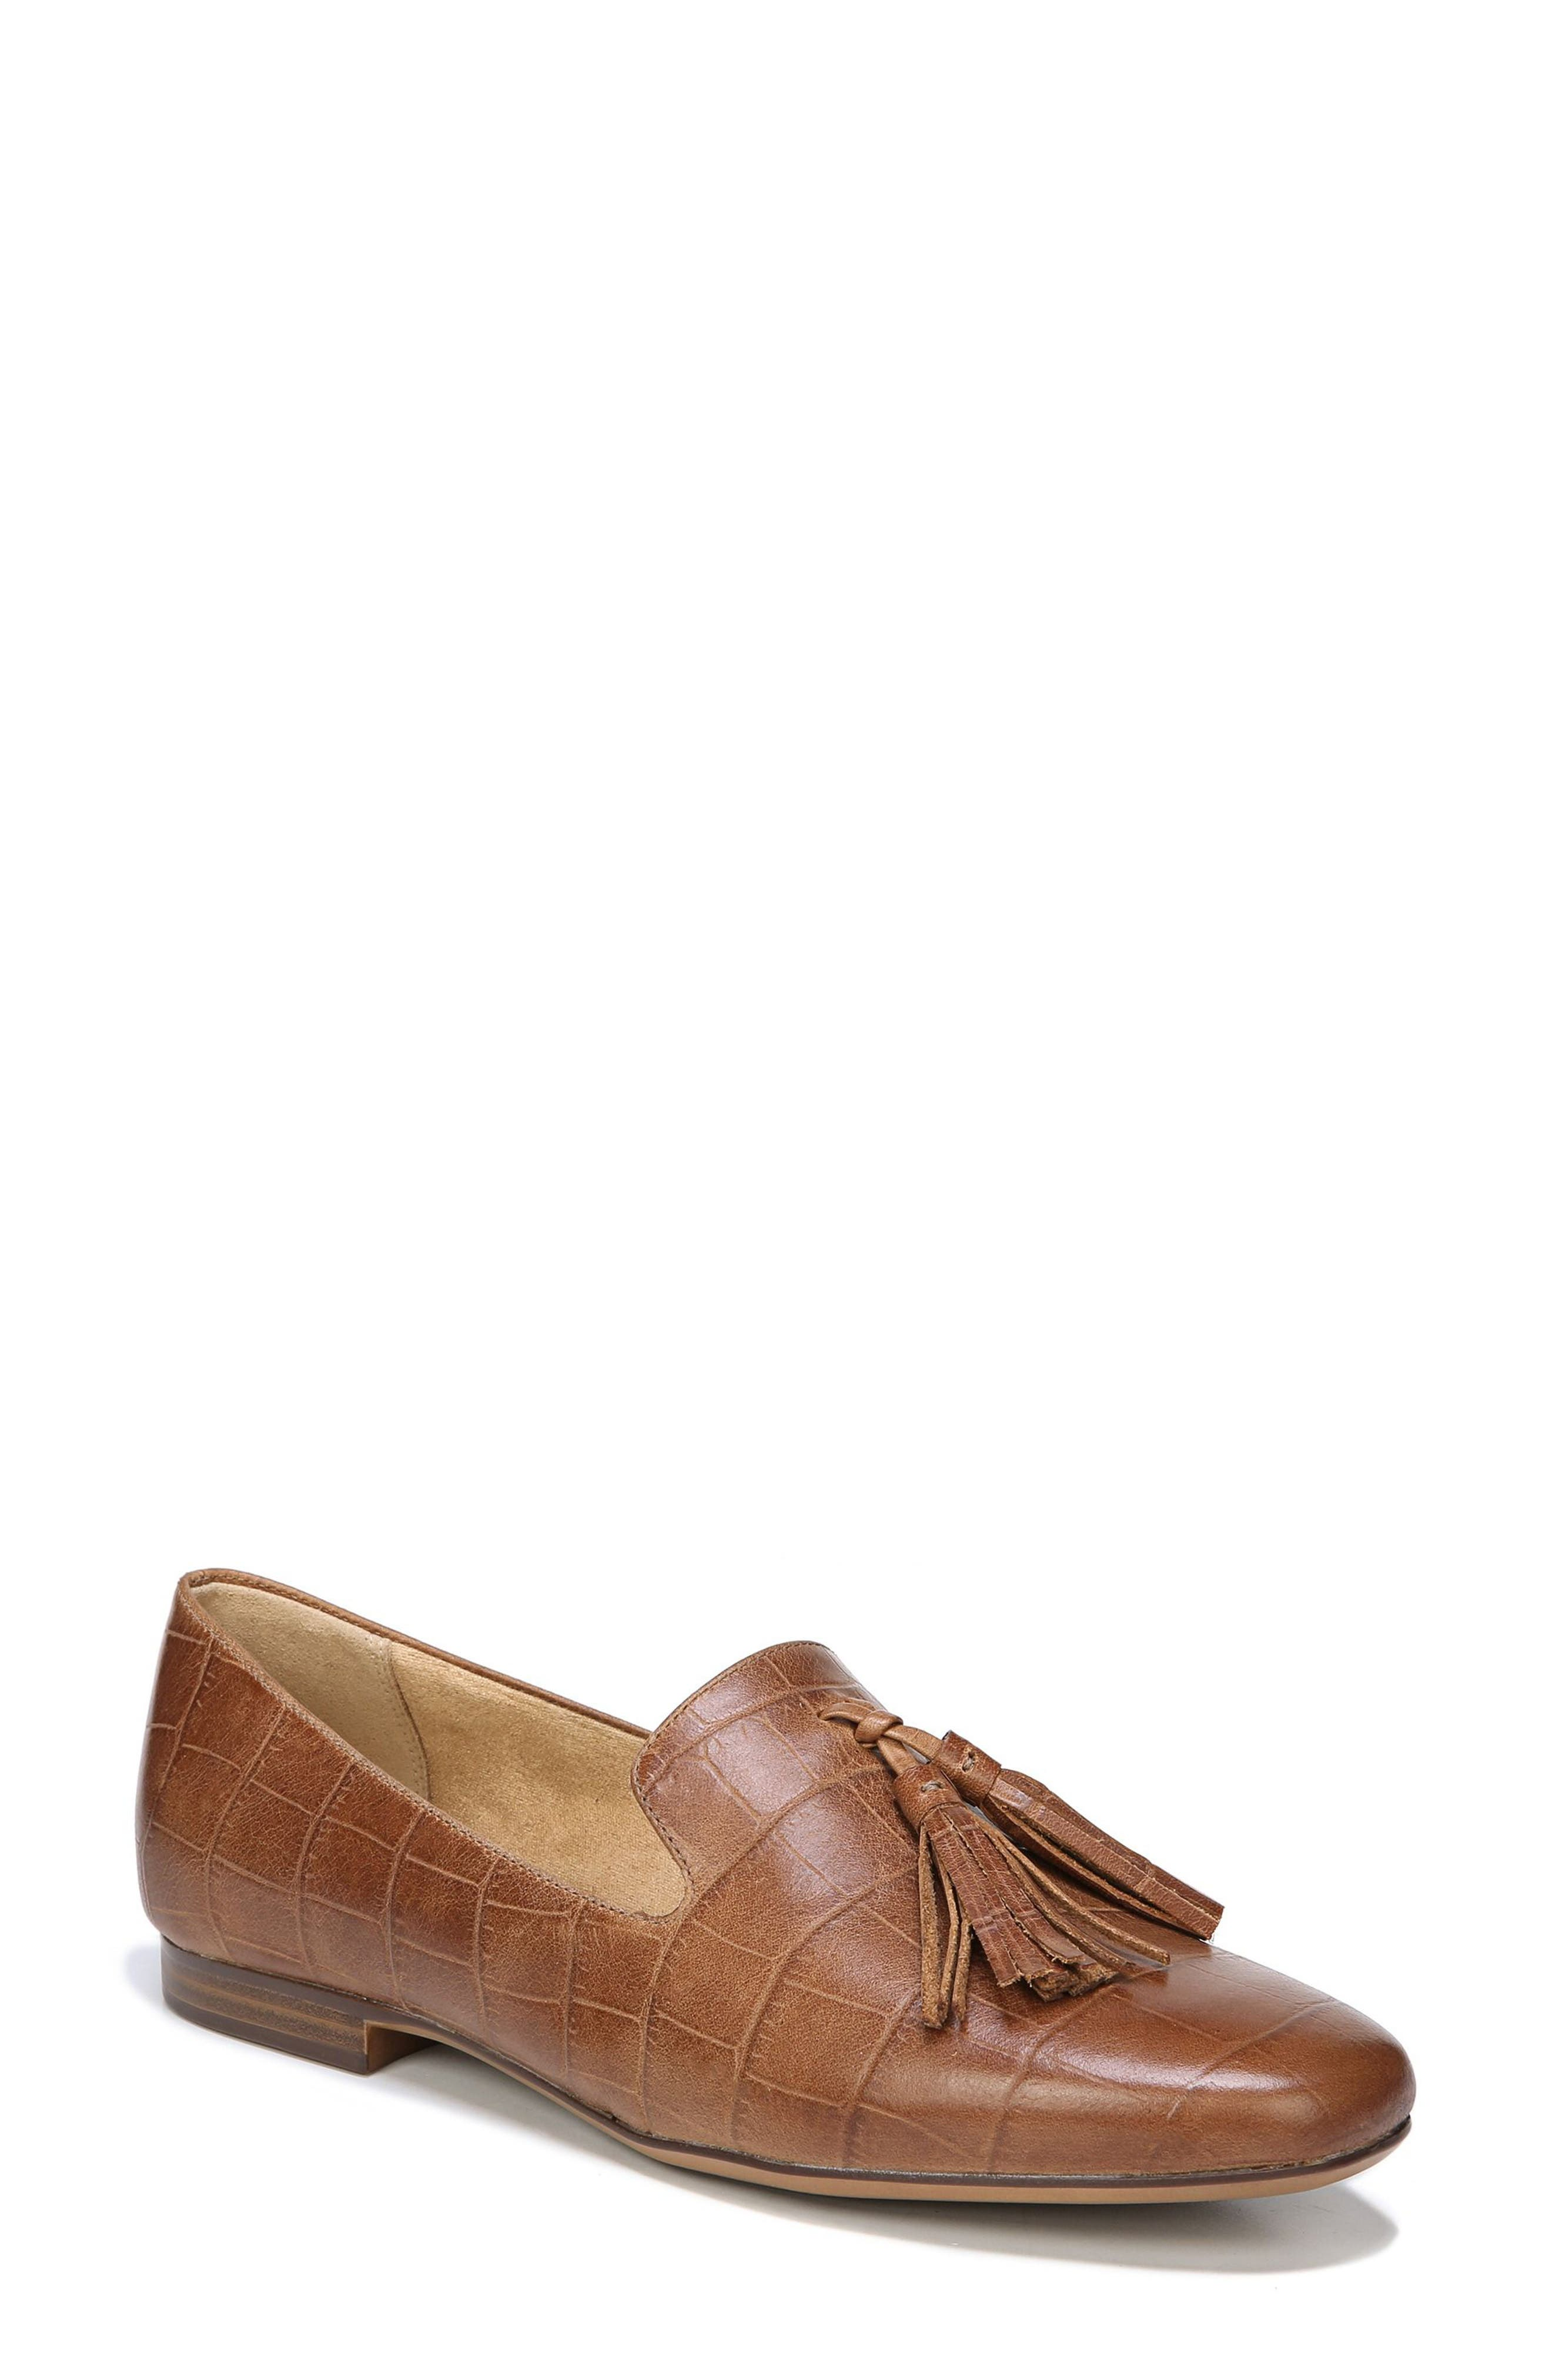 Elly Flat,                             Main thumbnail 1, color,                             Brown Leather